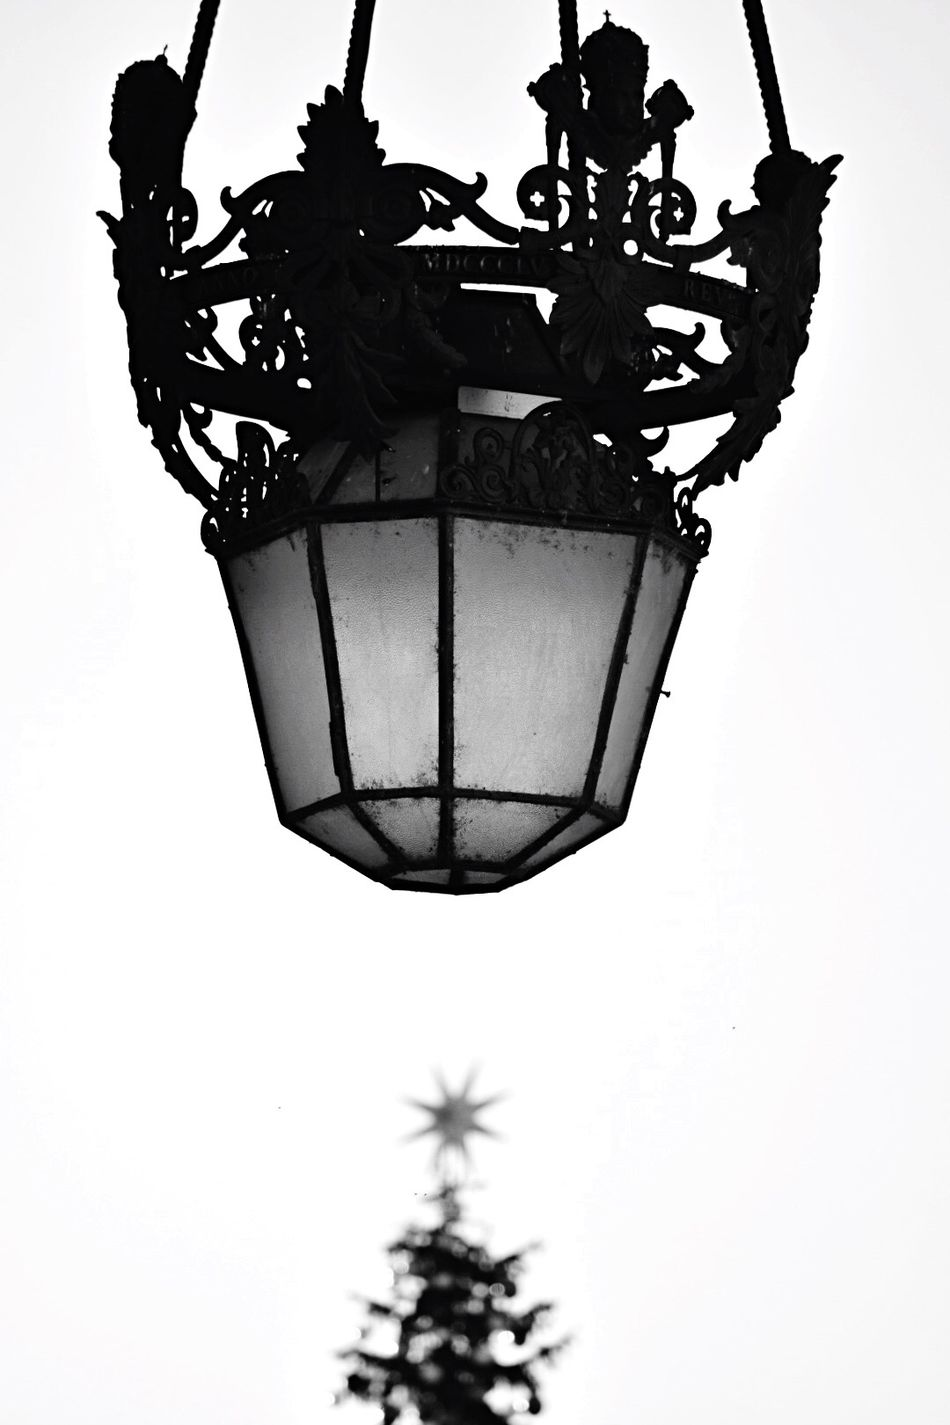 S.Peter Square at Xmas. Rome, Italy. Low Angle View No People Outdoors Day Black & White Silhouette Lamp Lamplight Xmas Tree Saint-Peter VaticanCity Rome